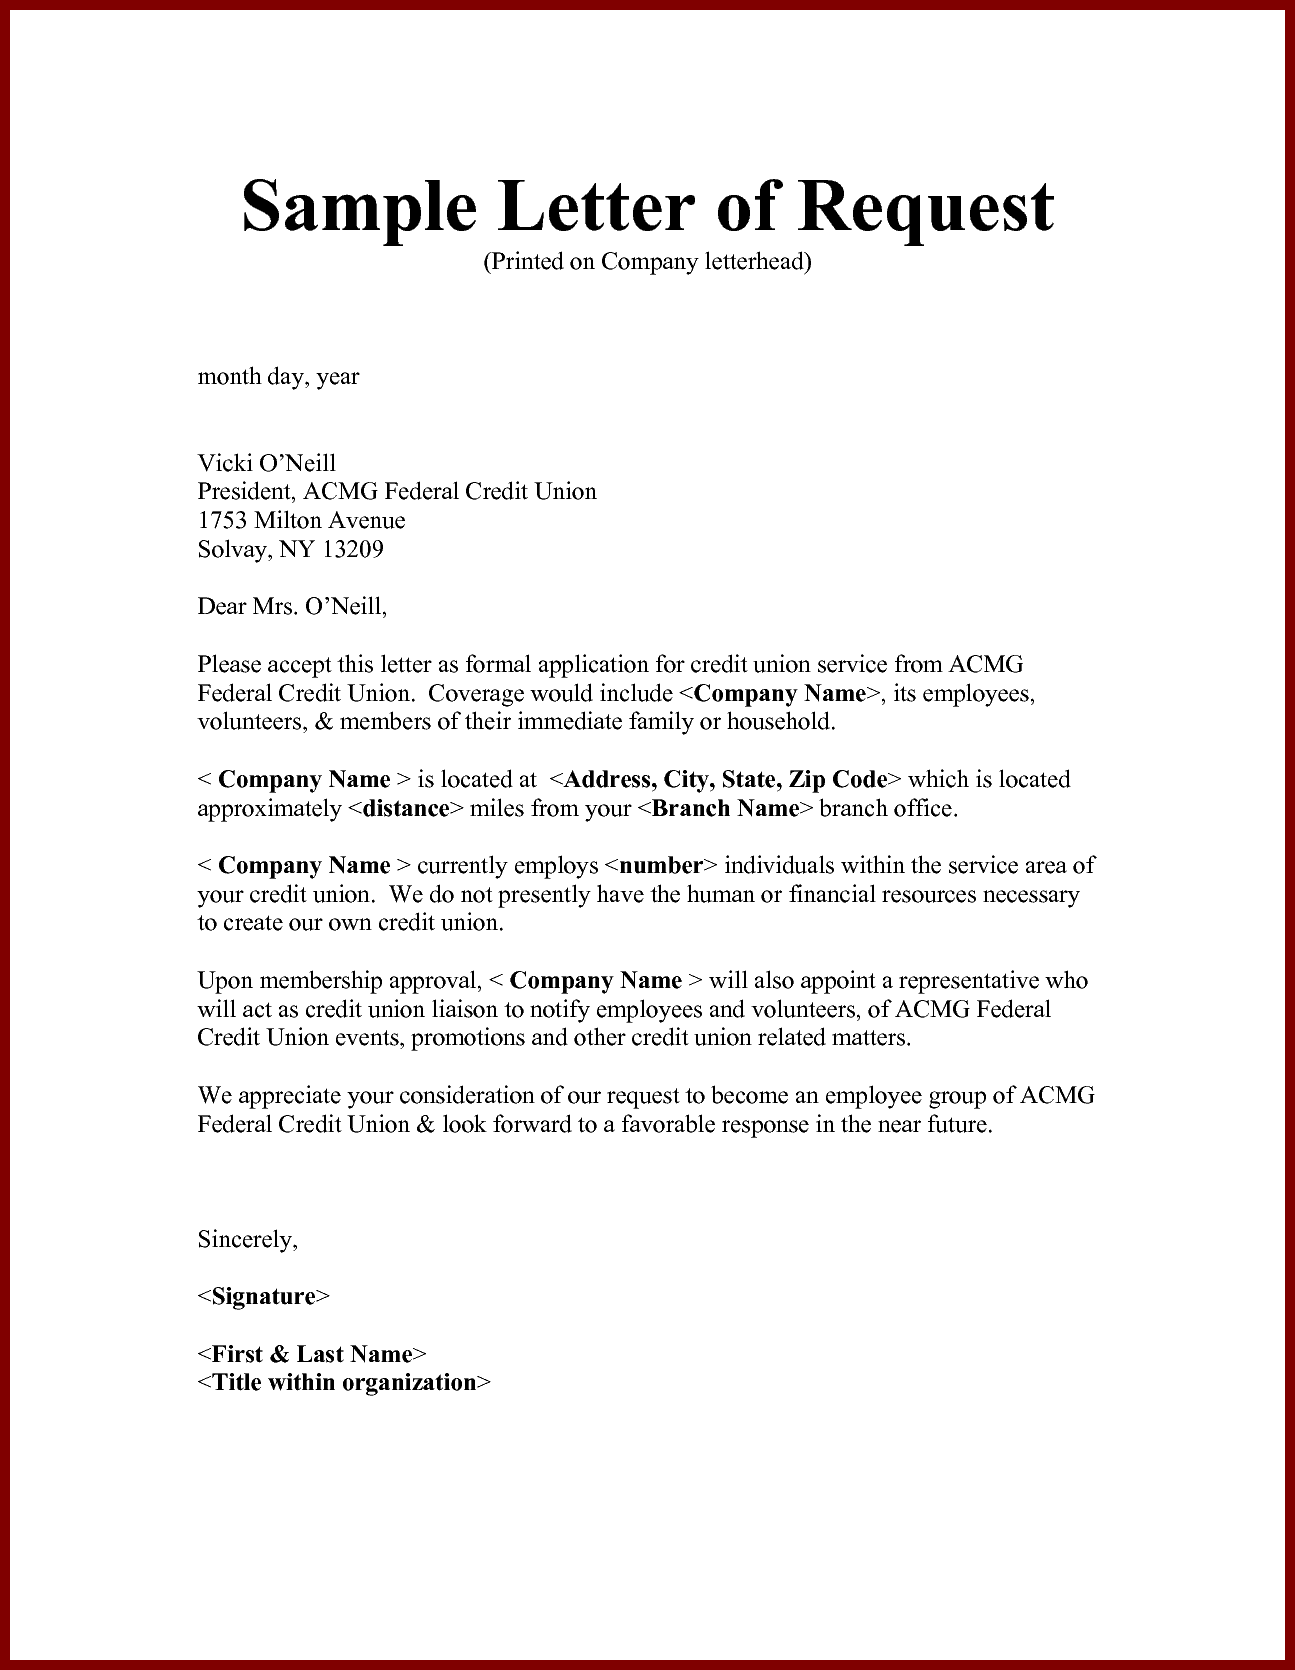 Application letter format for maternity leave college principal application letter format for maternity leave college principal altavistaventures Image collections